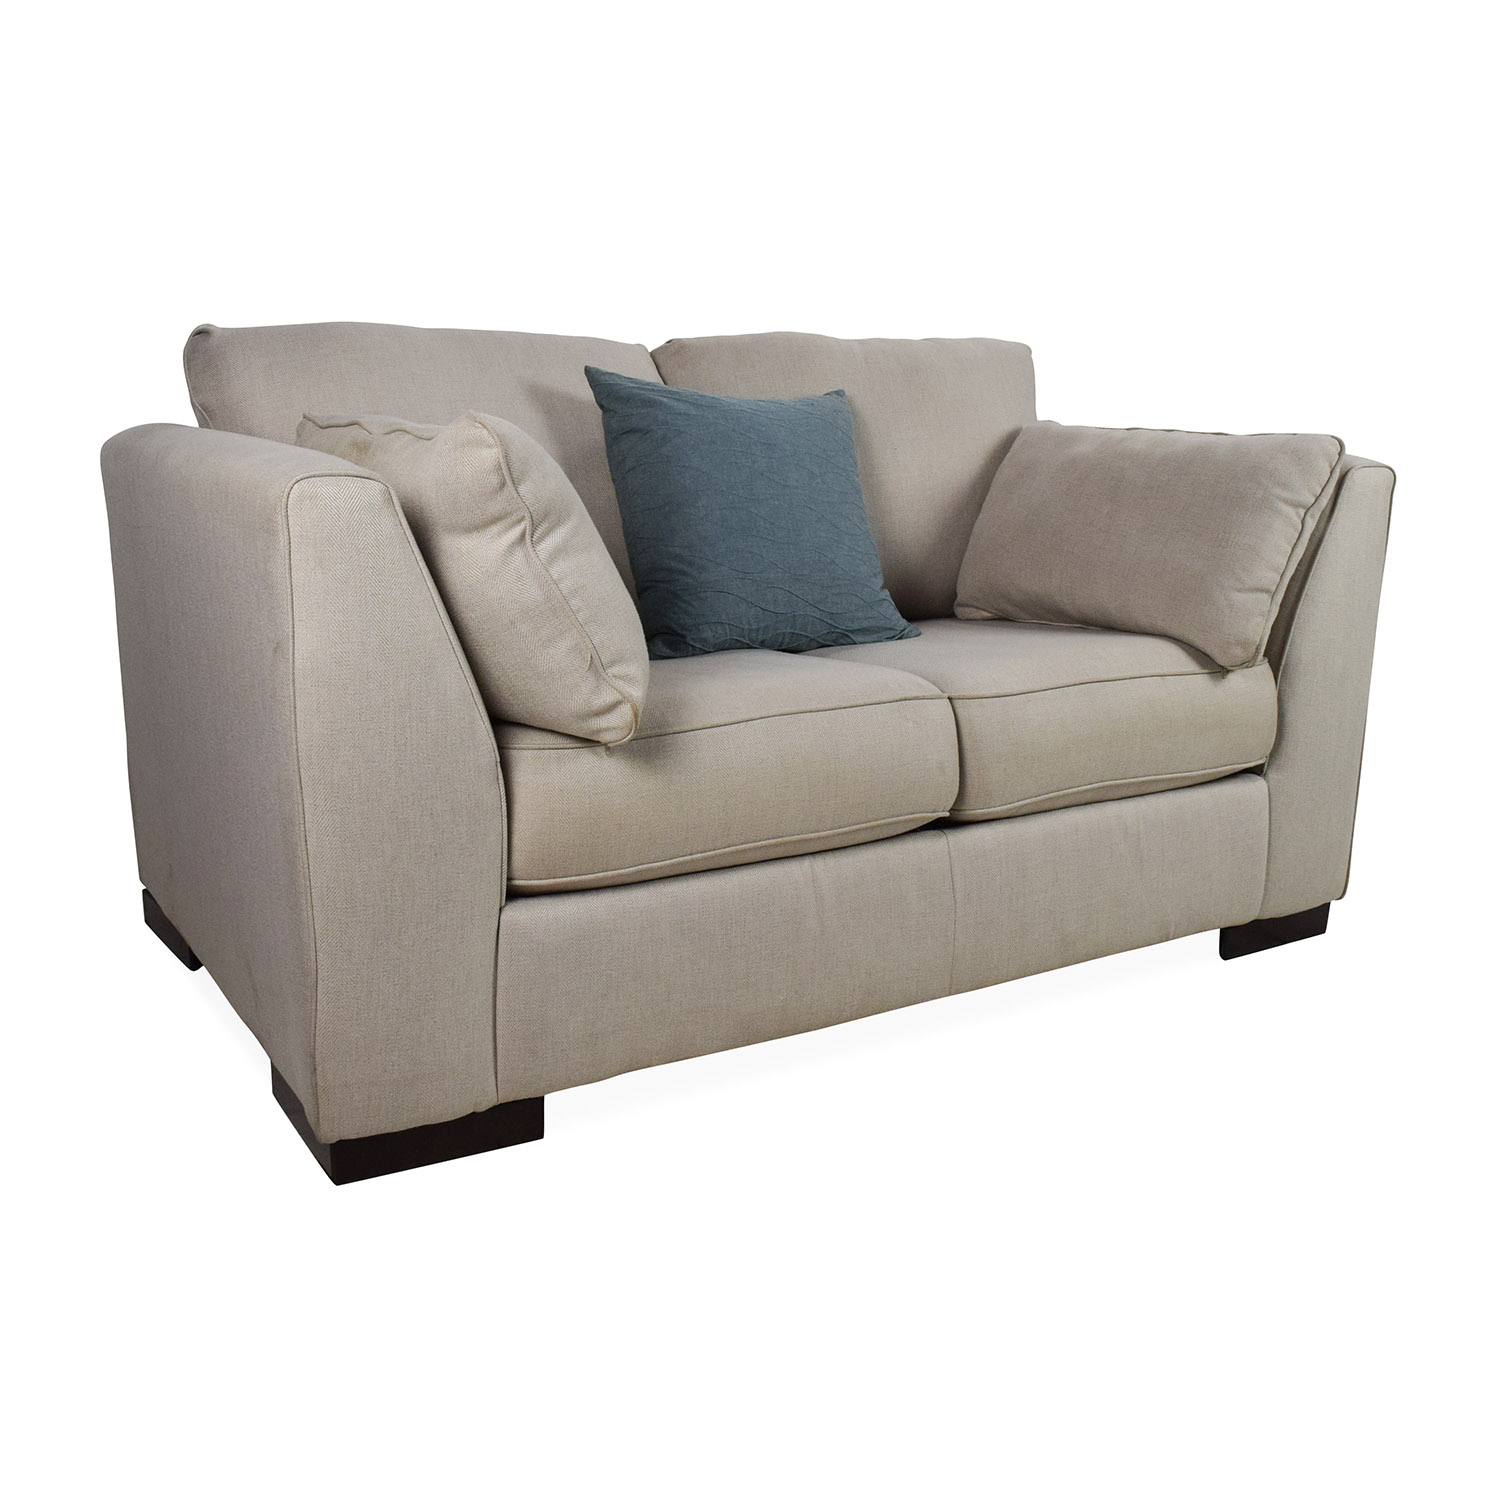 Loveseat Sofa Bed Ashley Furniture: Ashley Furniture Ashley Furniture Pierin